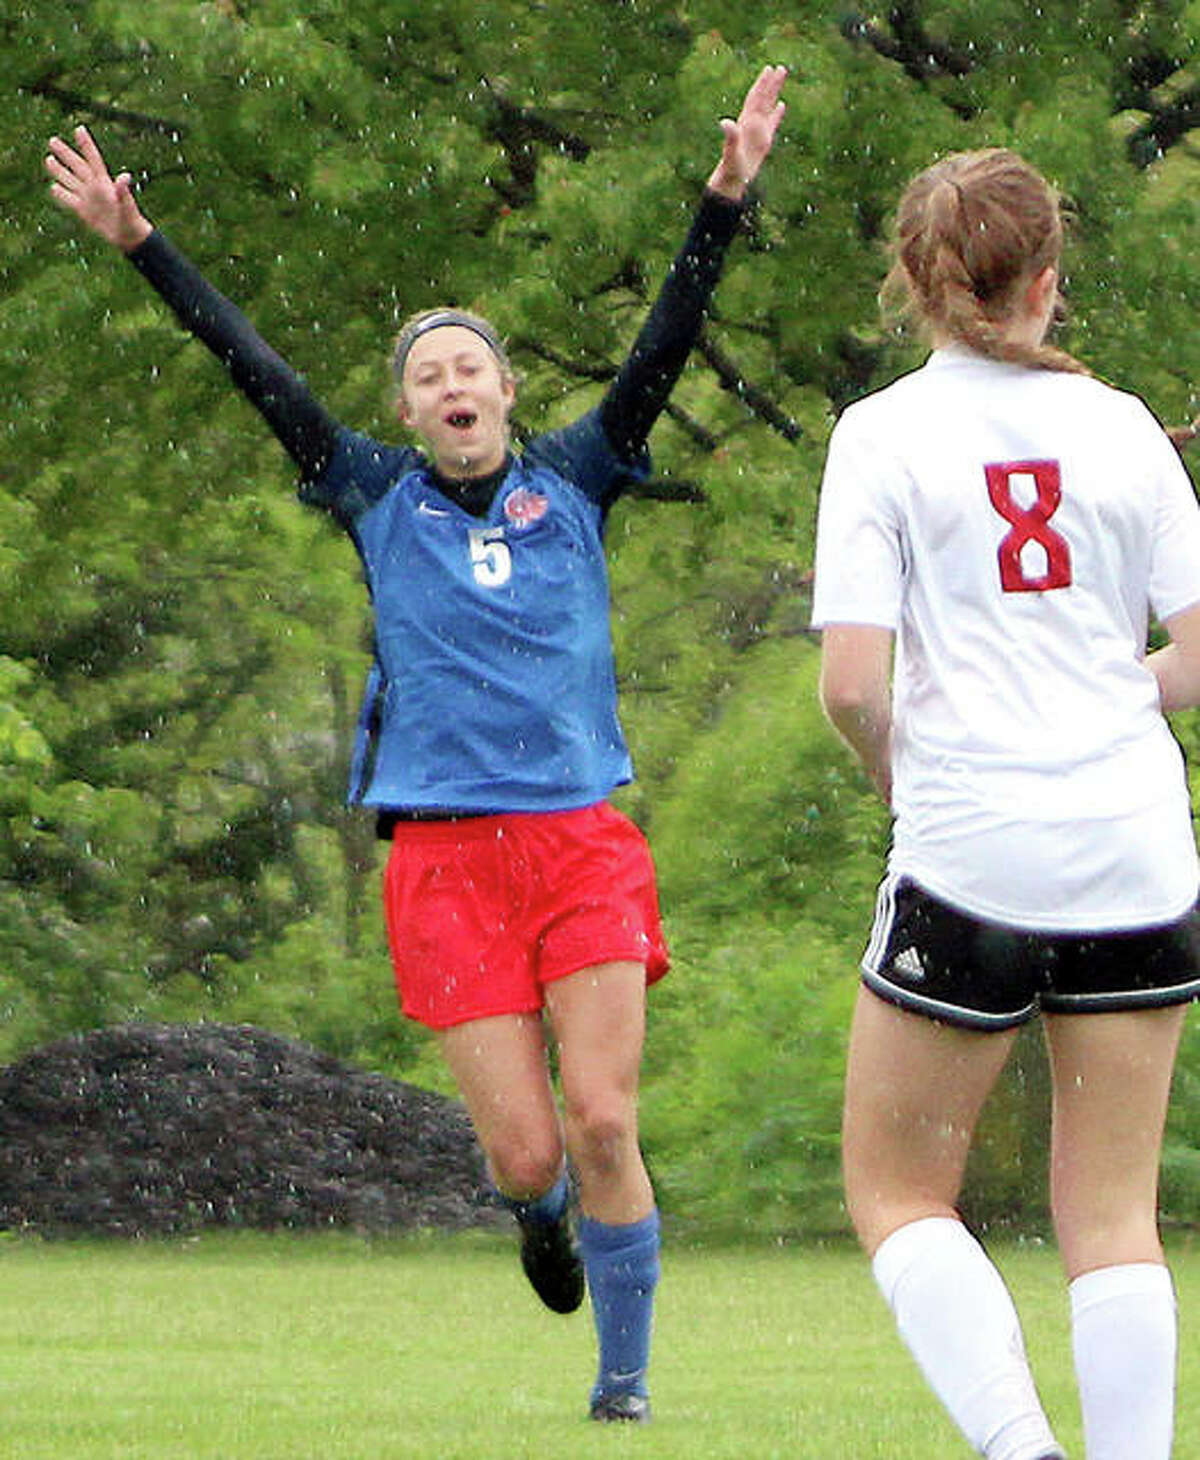 Adriann Welte of Carlinville celebrates after assisting on teammate Lexi West's goal in the second half of Saturday's Carlinville 1A Regional title game at Loveless Park. Also shown is Staunton's Erica Pickerell (8).